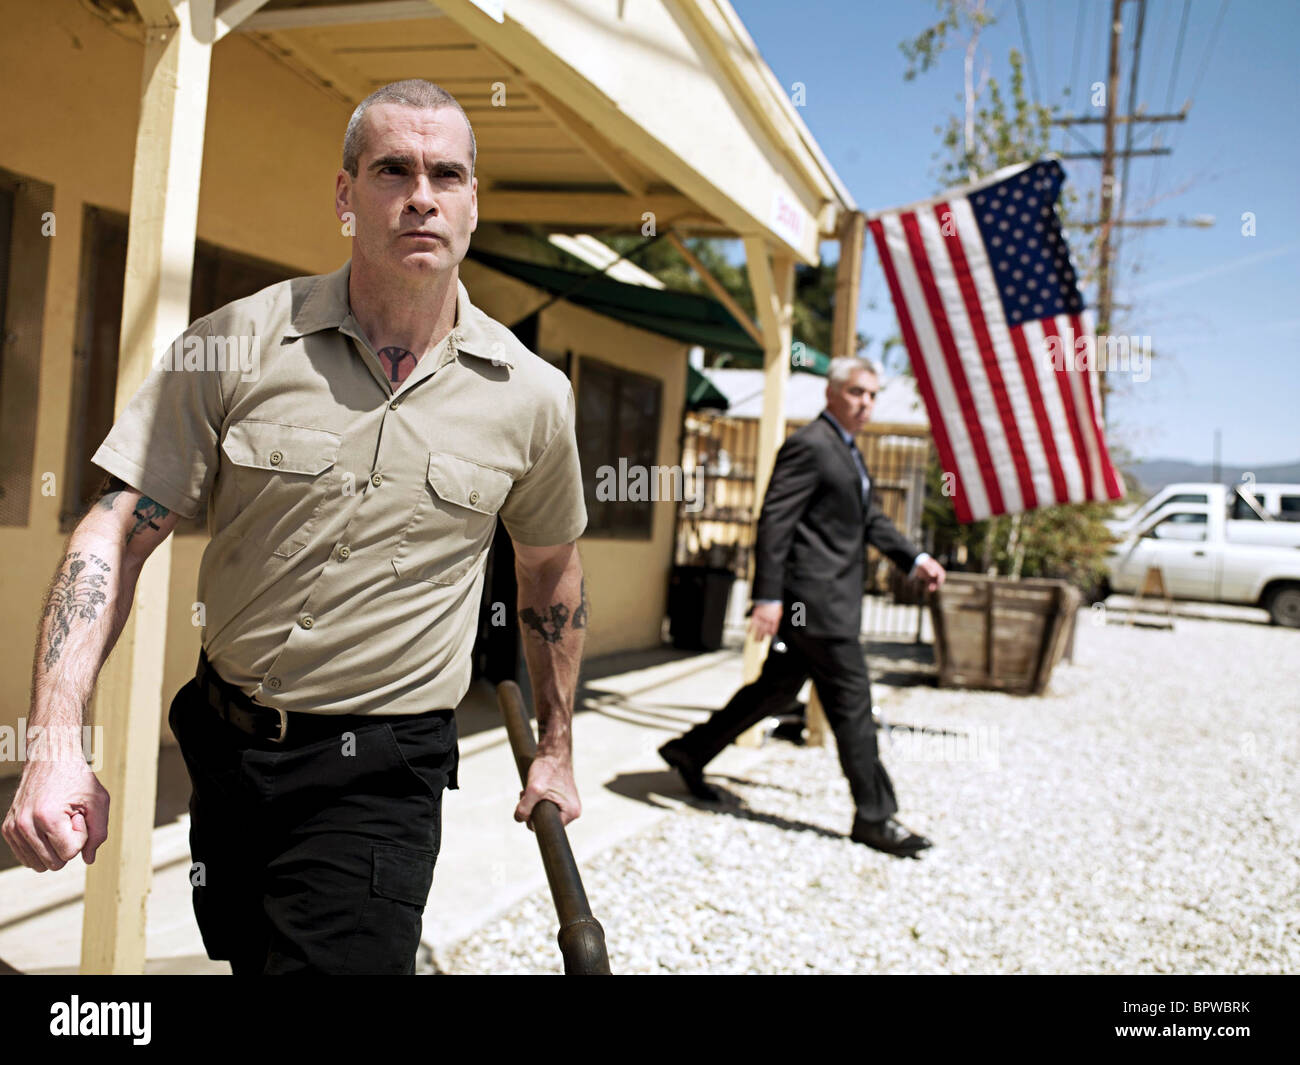 Sons of anarchy henry rollins